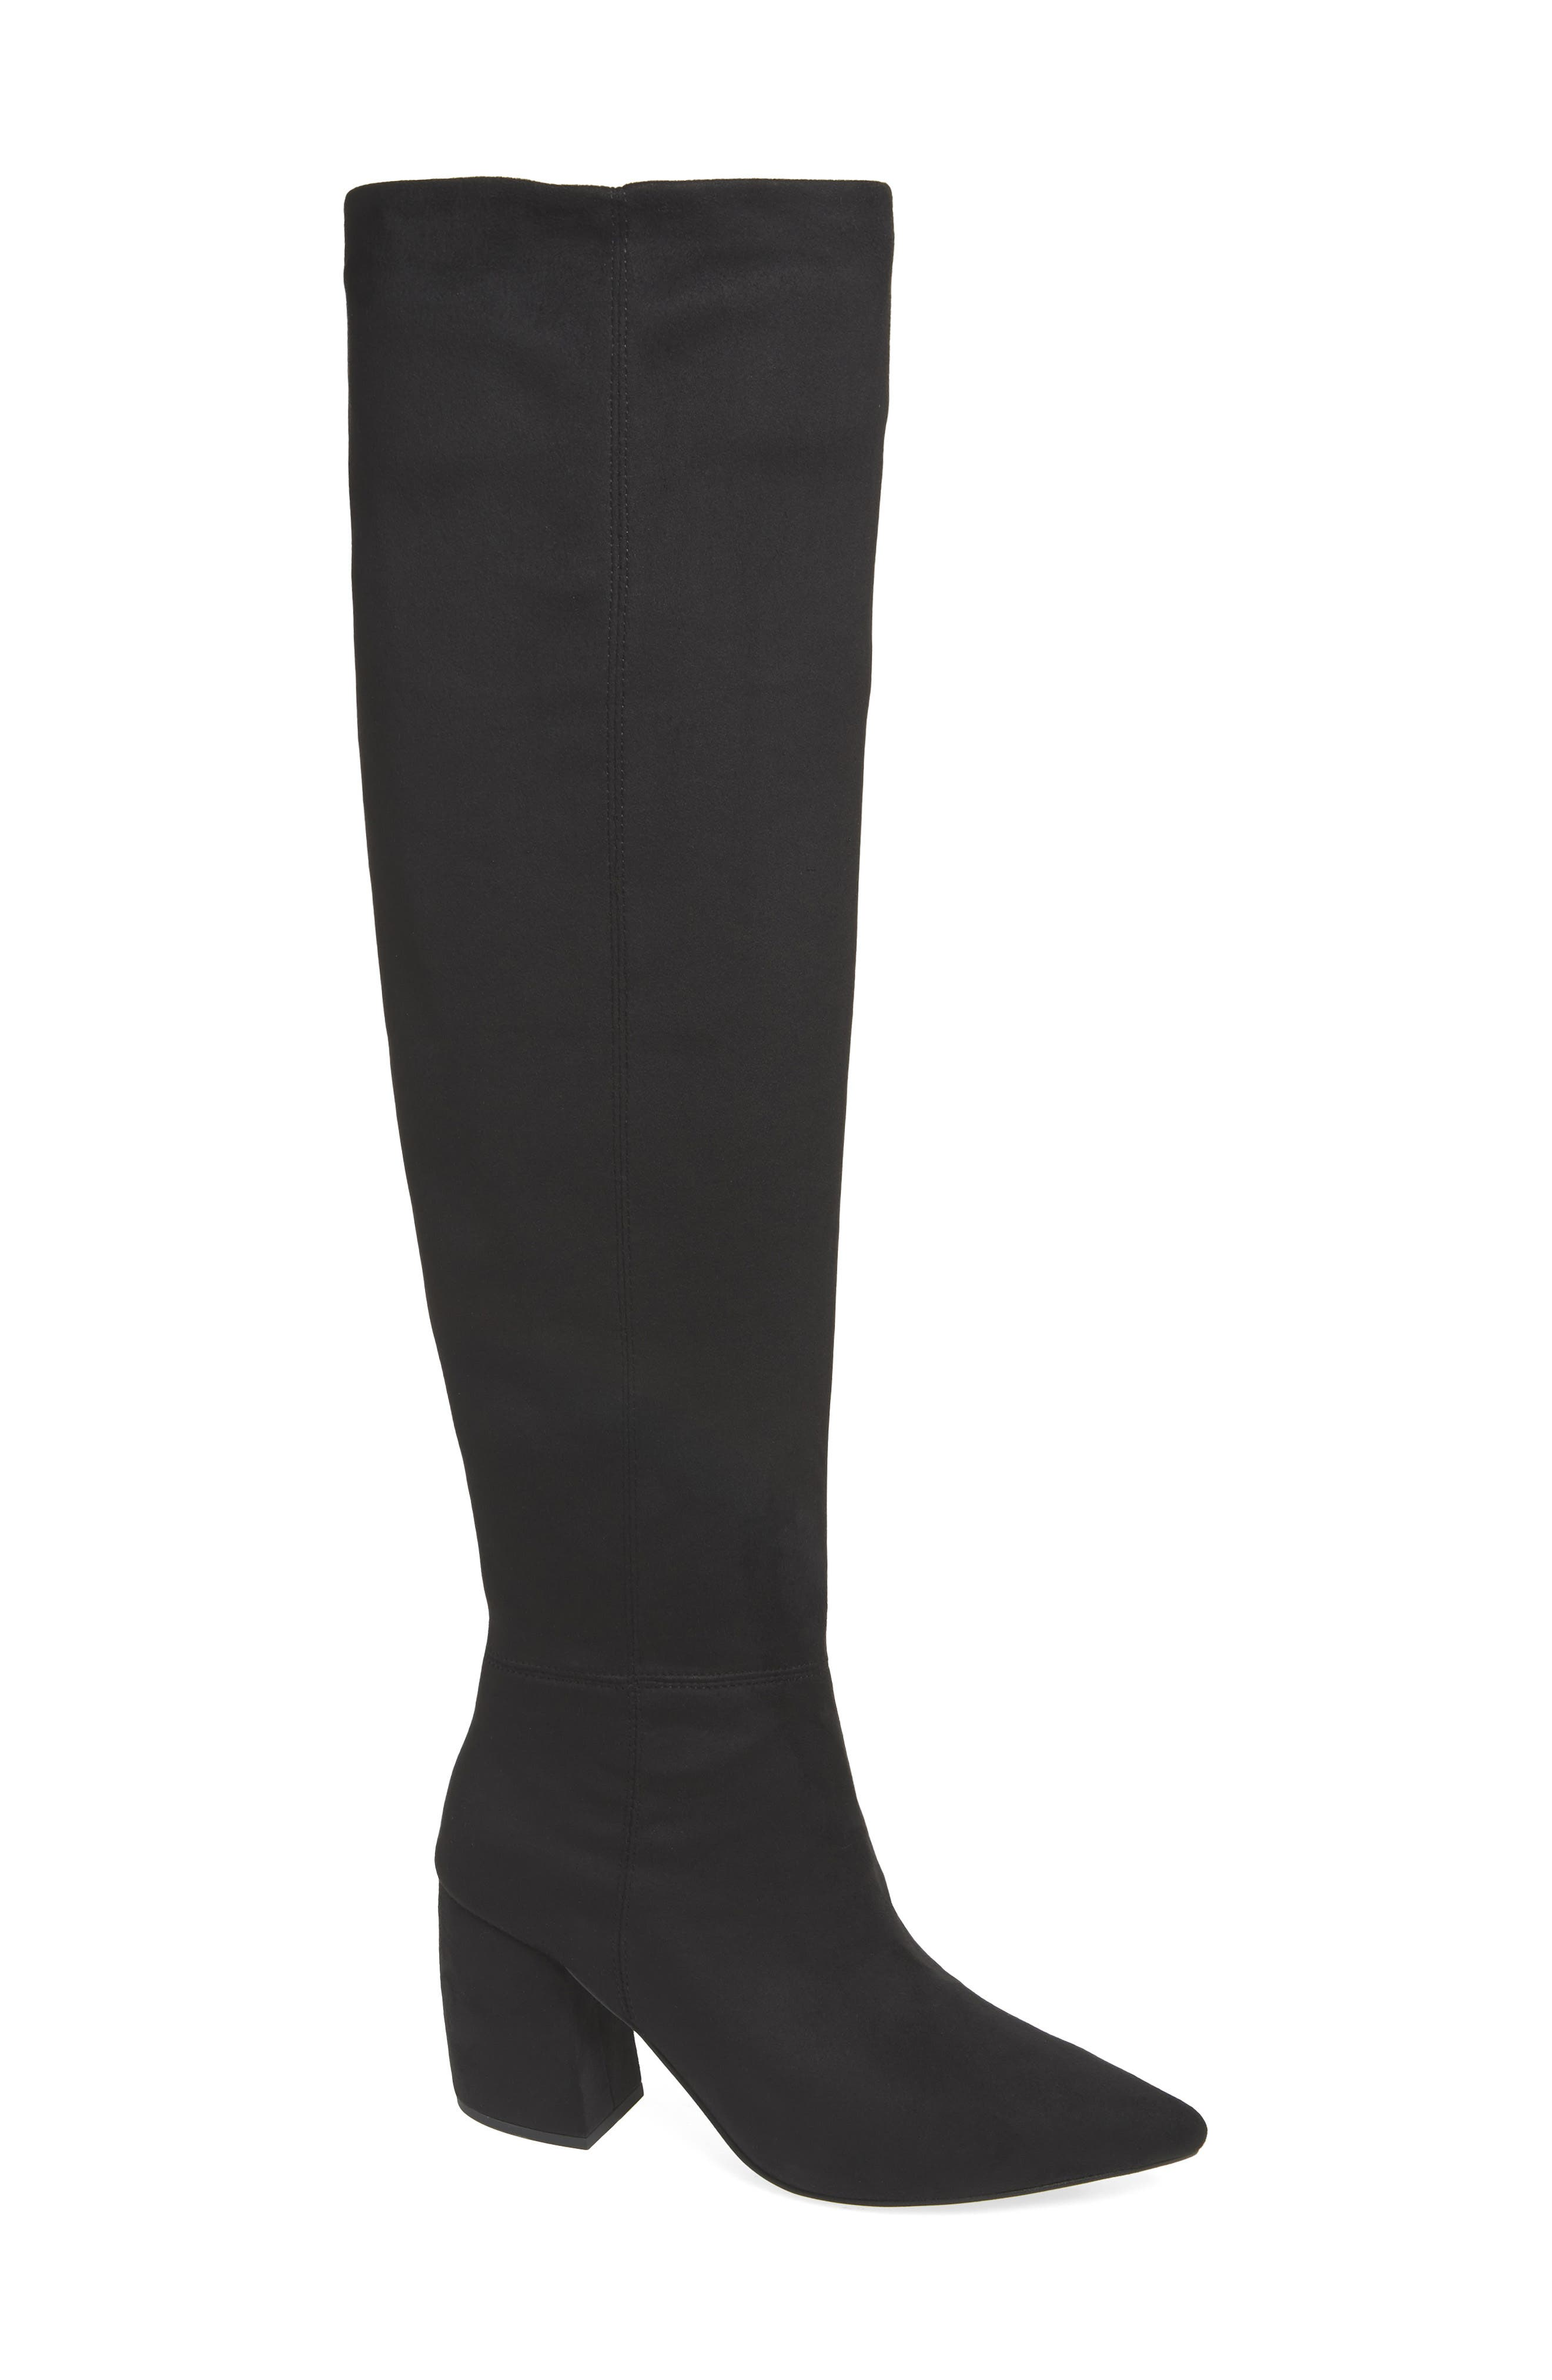 Final Slouch Over the Knee Boot,                             Main thumbnail 1, color,                             BLACK SUEDE